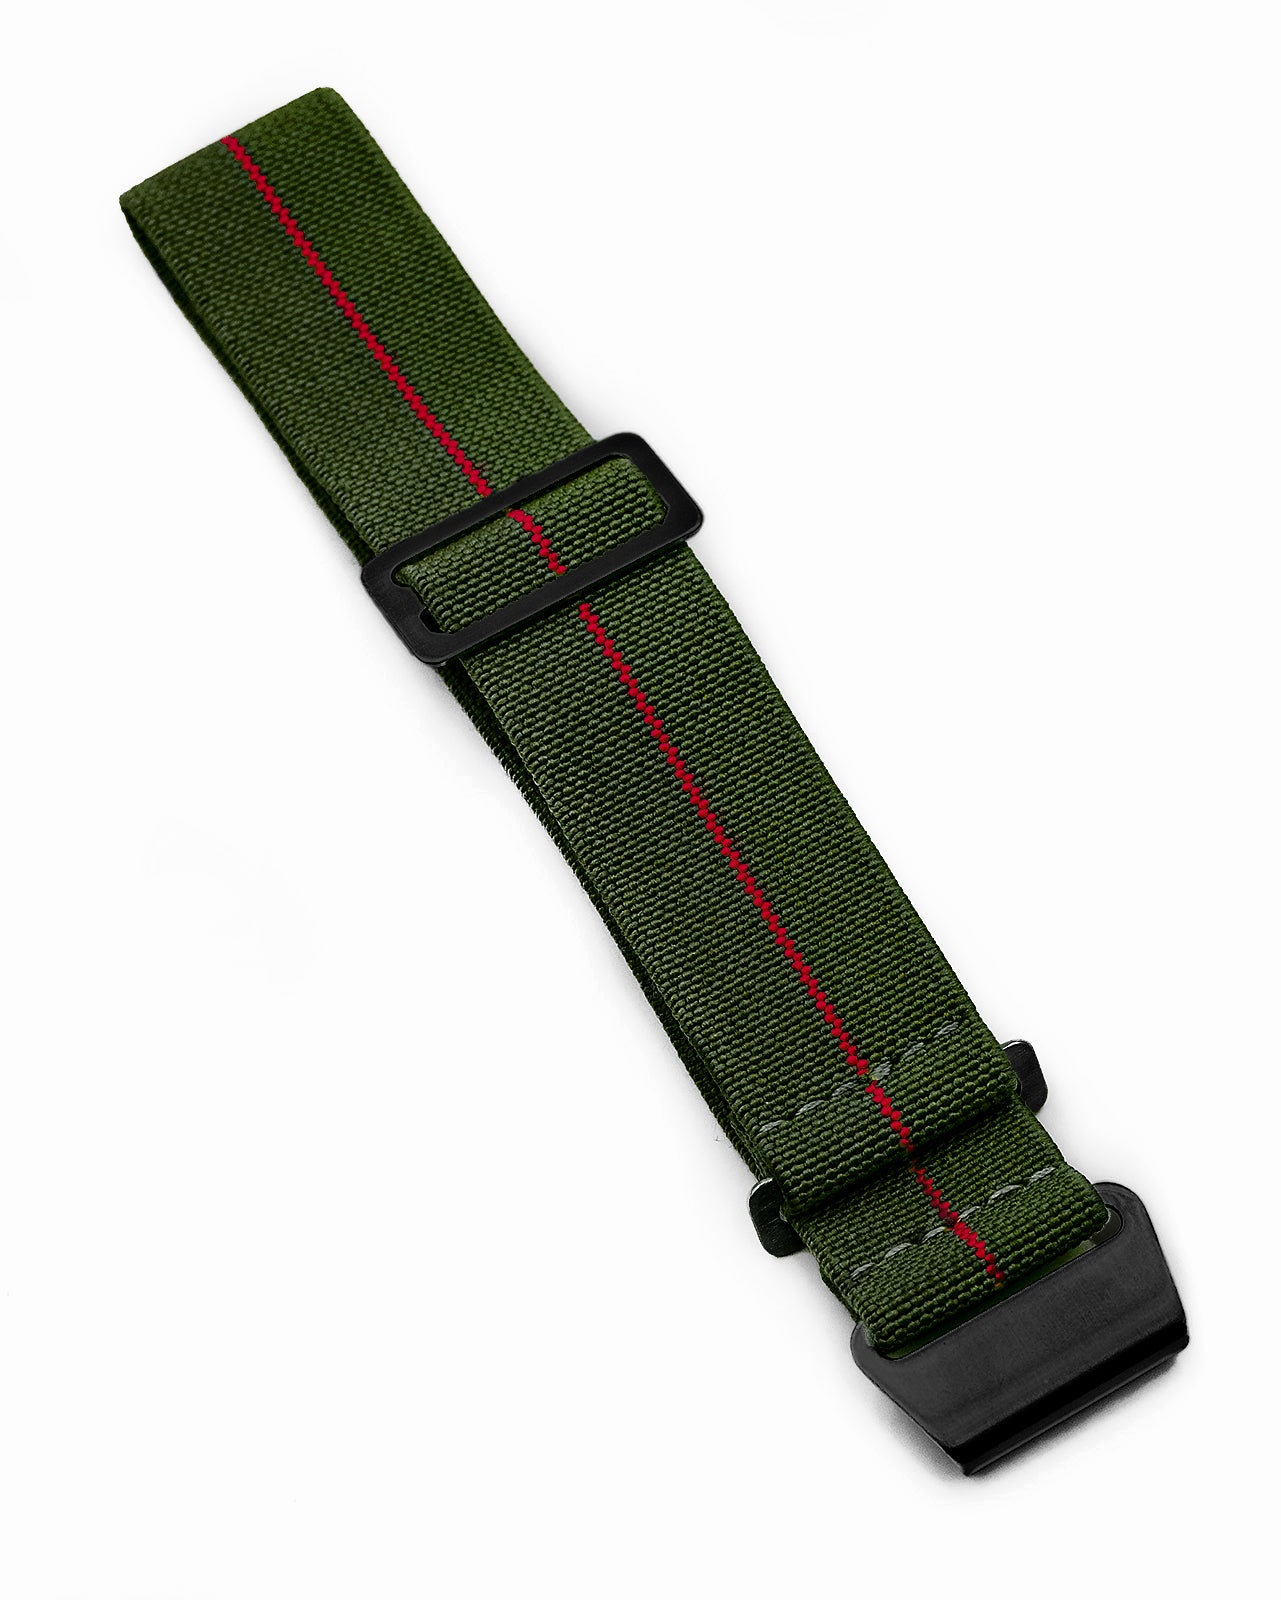 PARA Elastic (Stealth) - Olive Green with Red Centerline